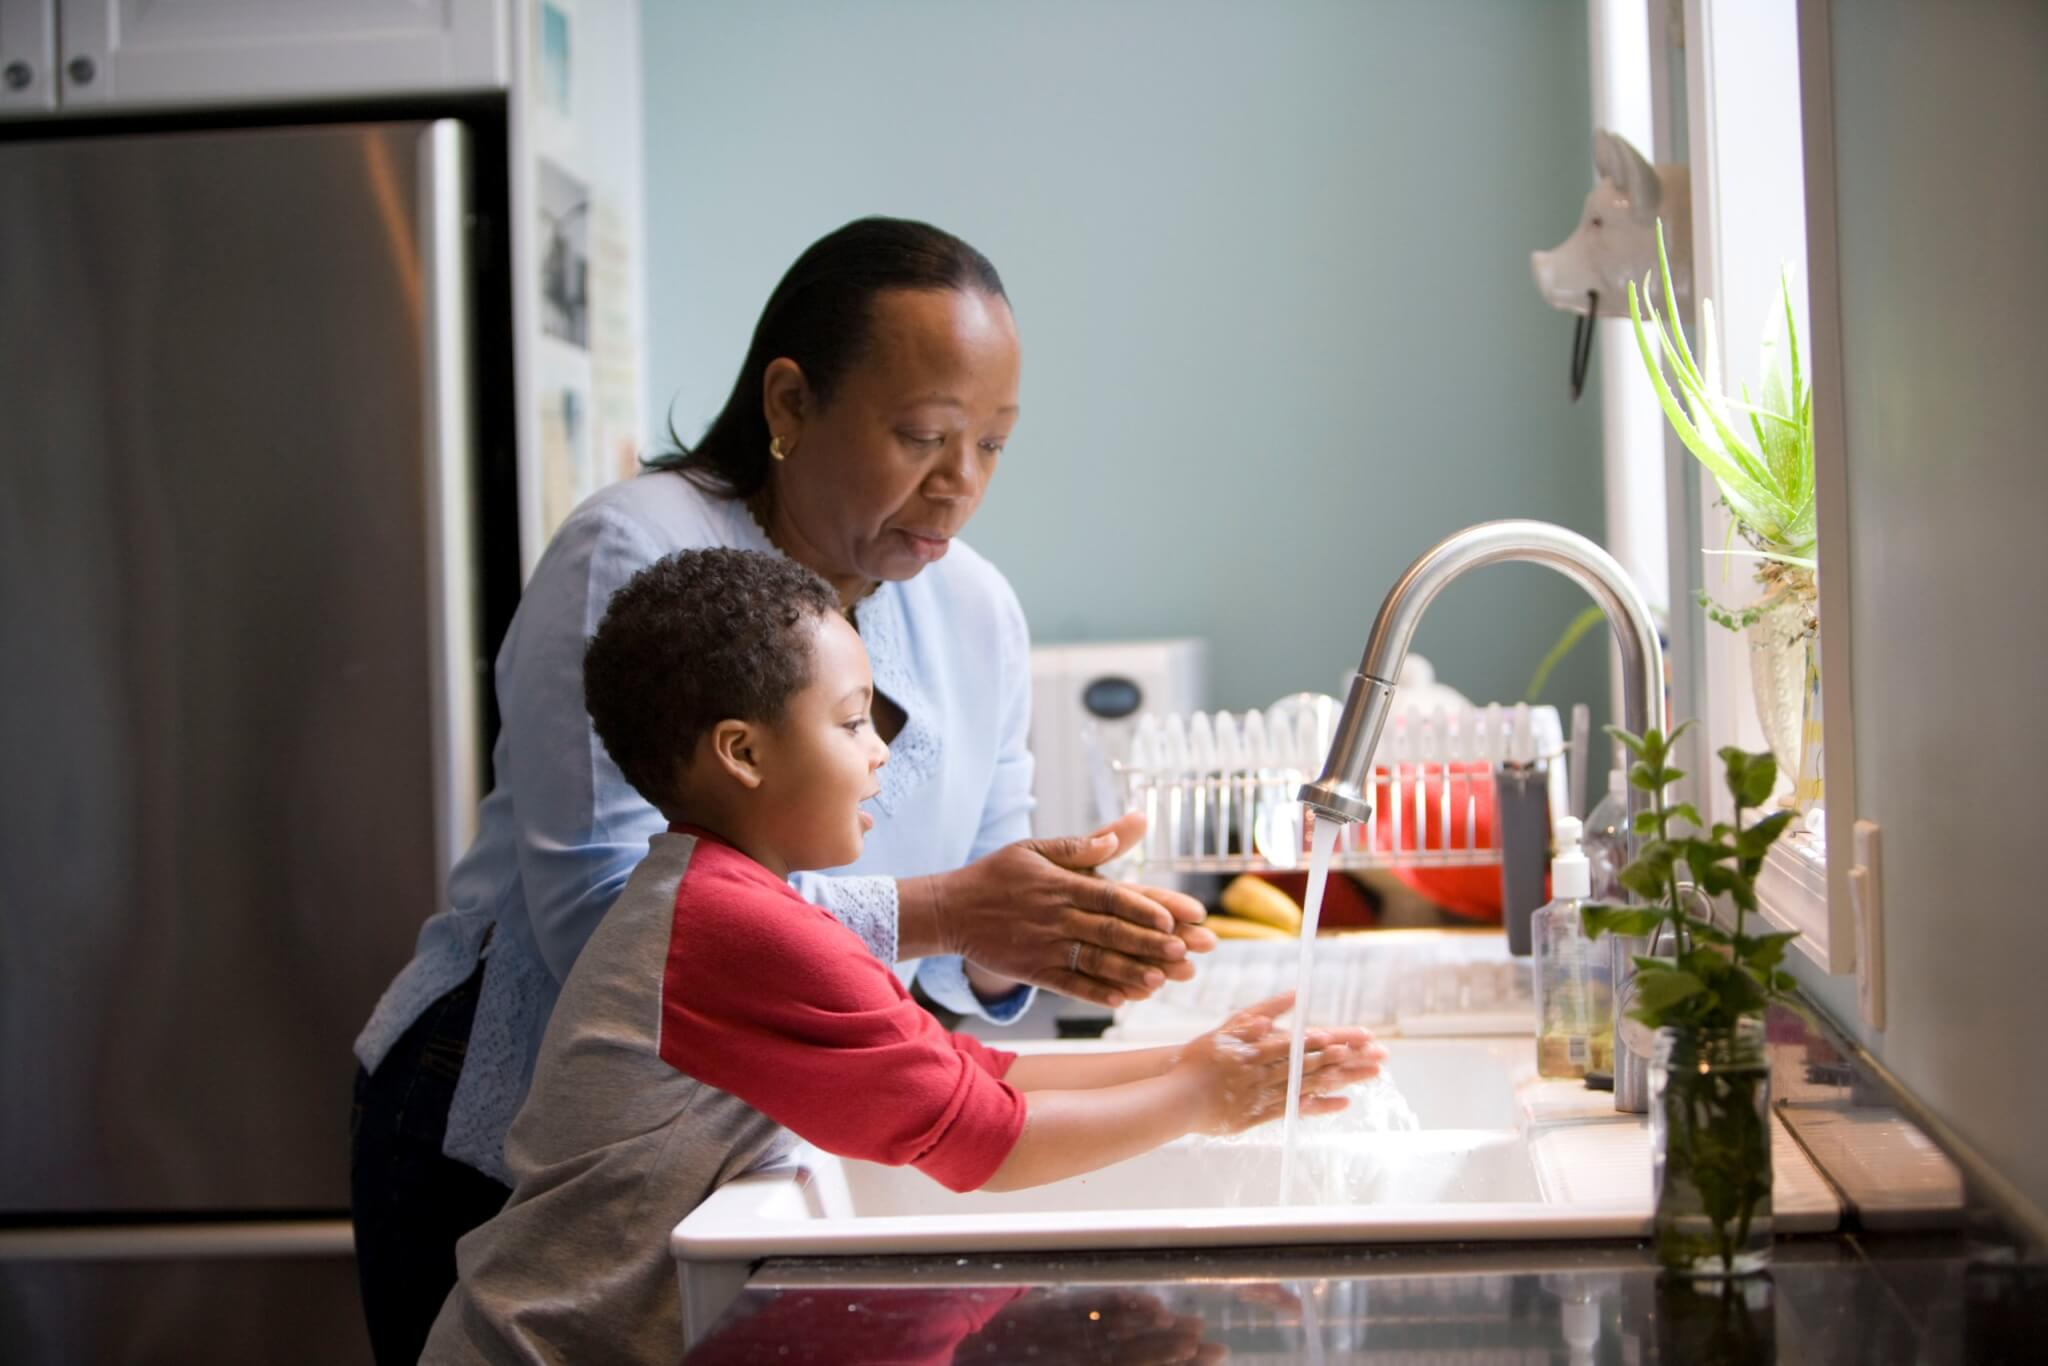 woman washing hands with her son during the coronavirus outbreak showing the balance of life and work and family dynamics by zodiac sign during coronavirus article by the astrotwins for astrostyle.com